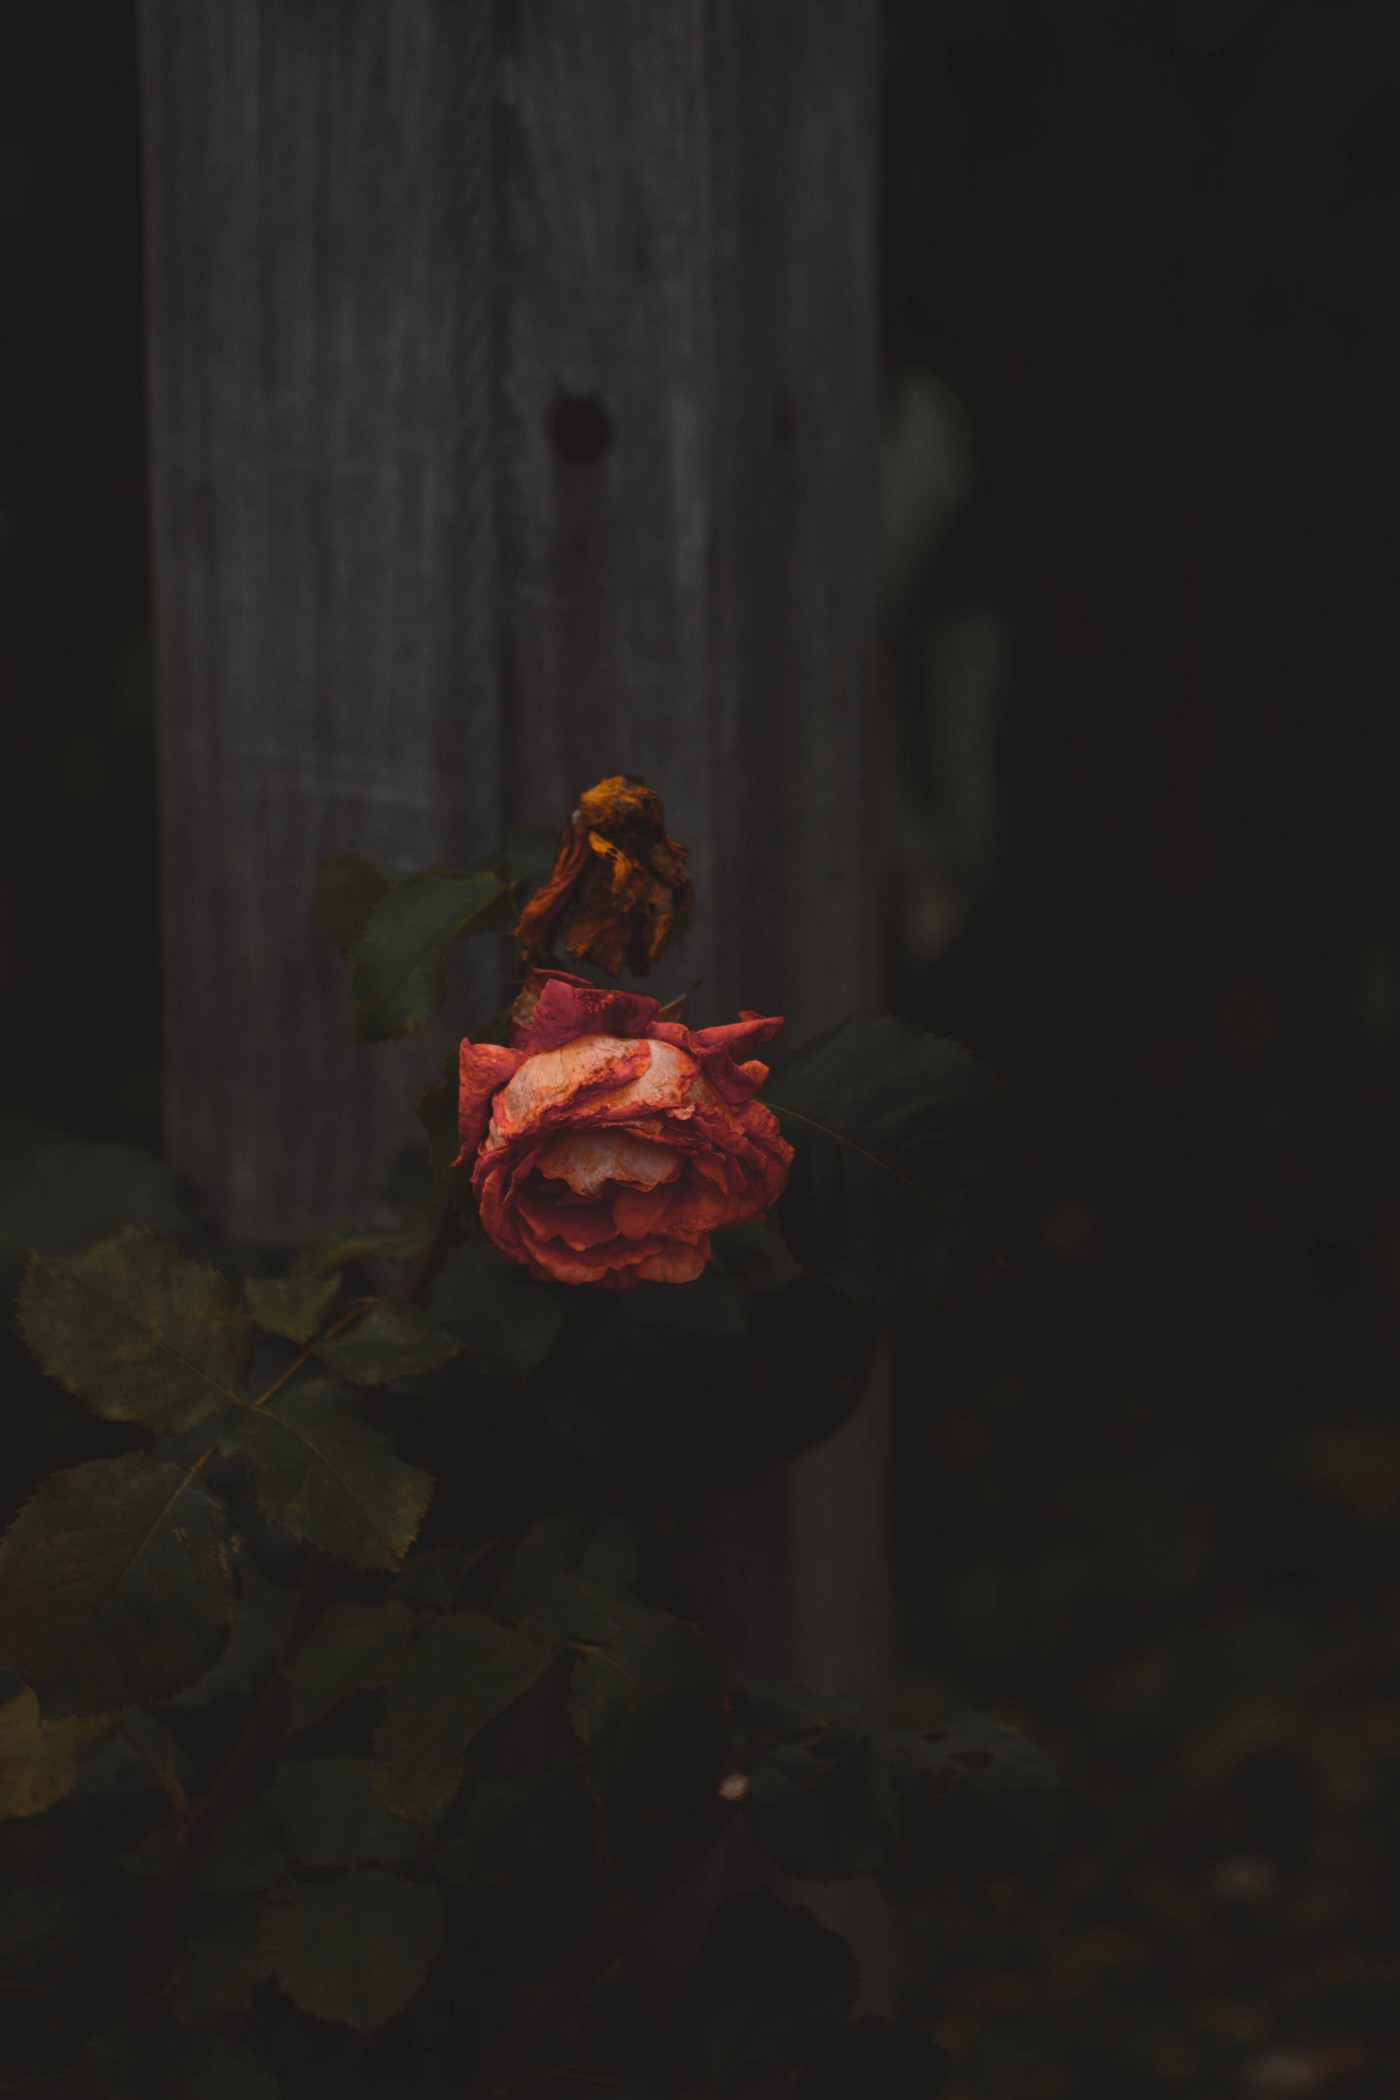 a dark background showing only a single, slightly dying rose falling